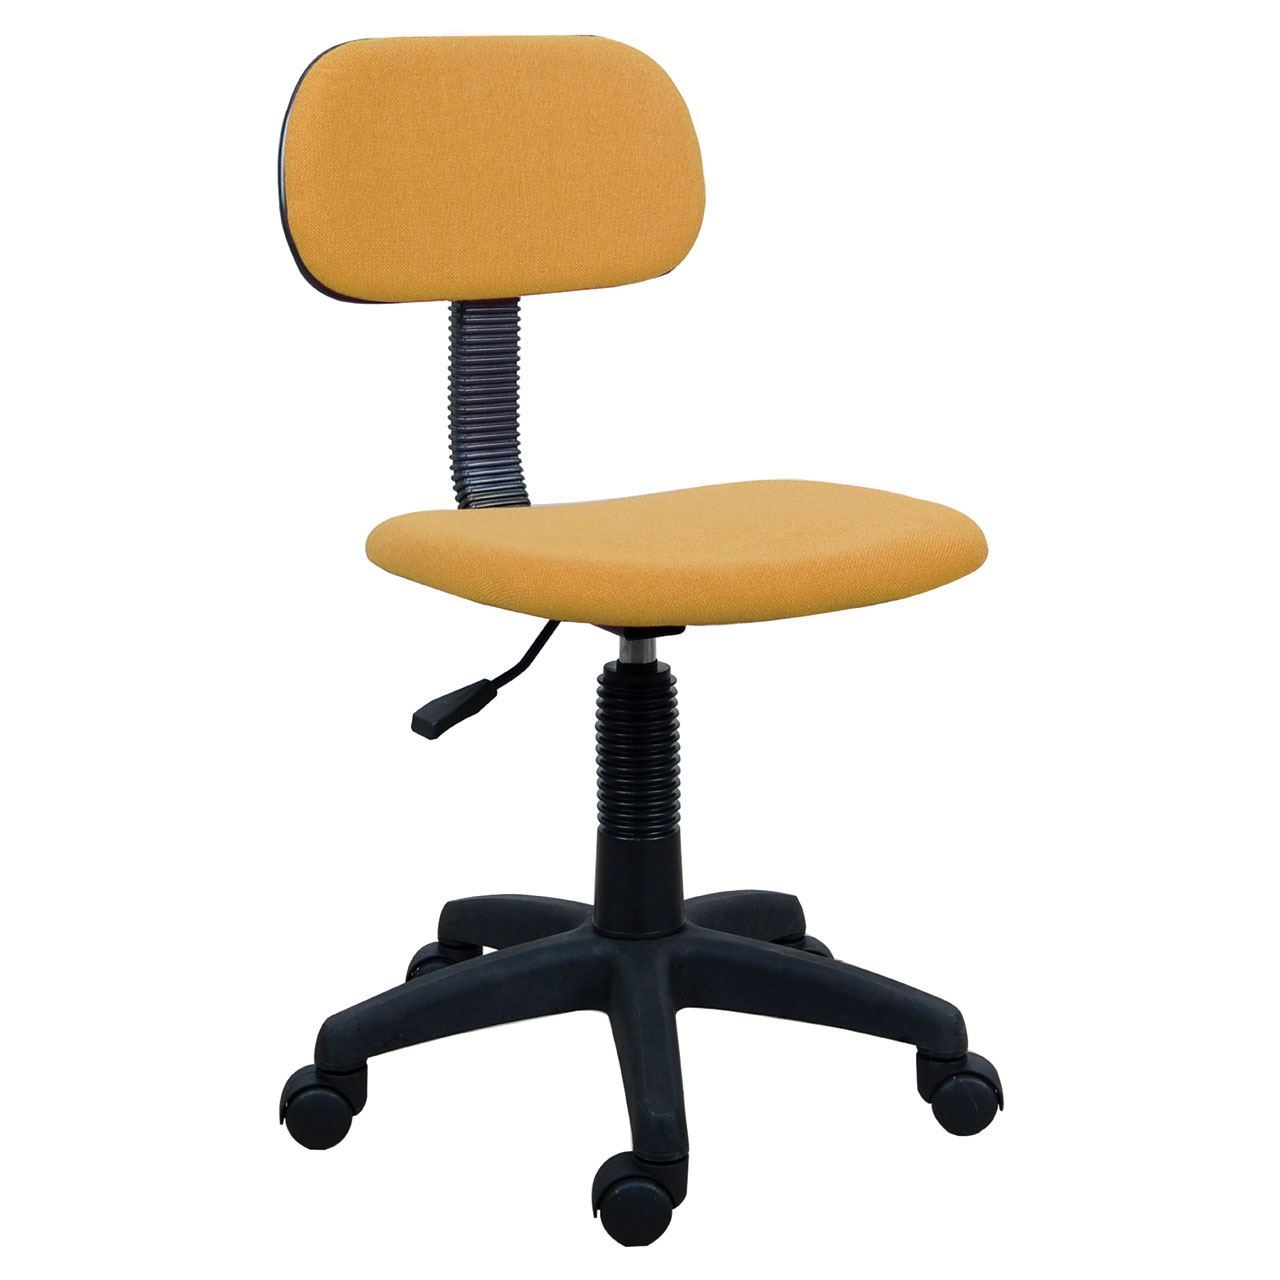 Swivel Fabric Office Chair With Wheels Adjustable Height Yellow EBay